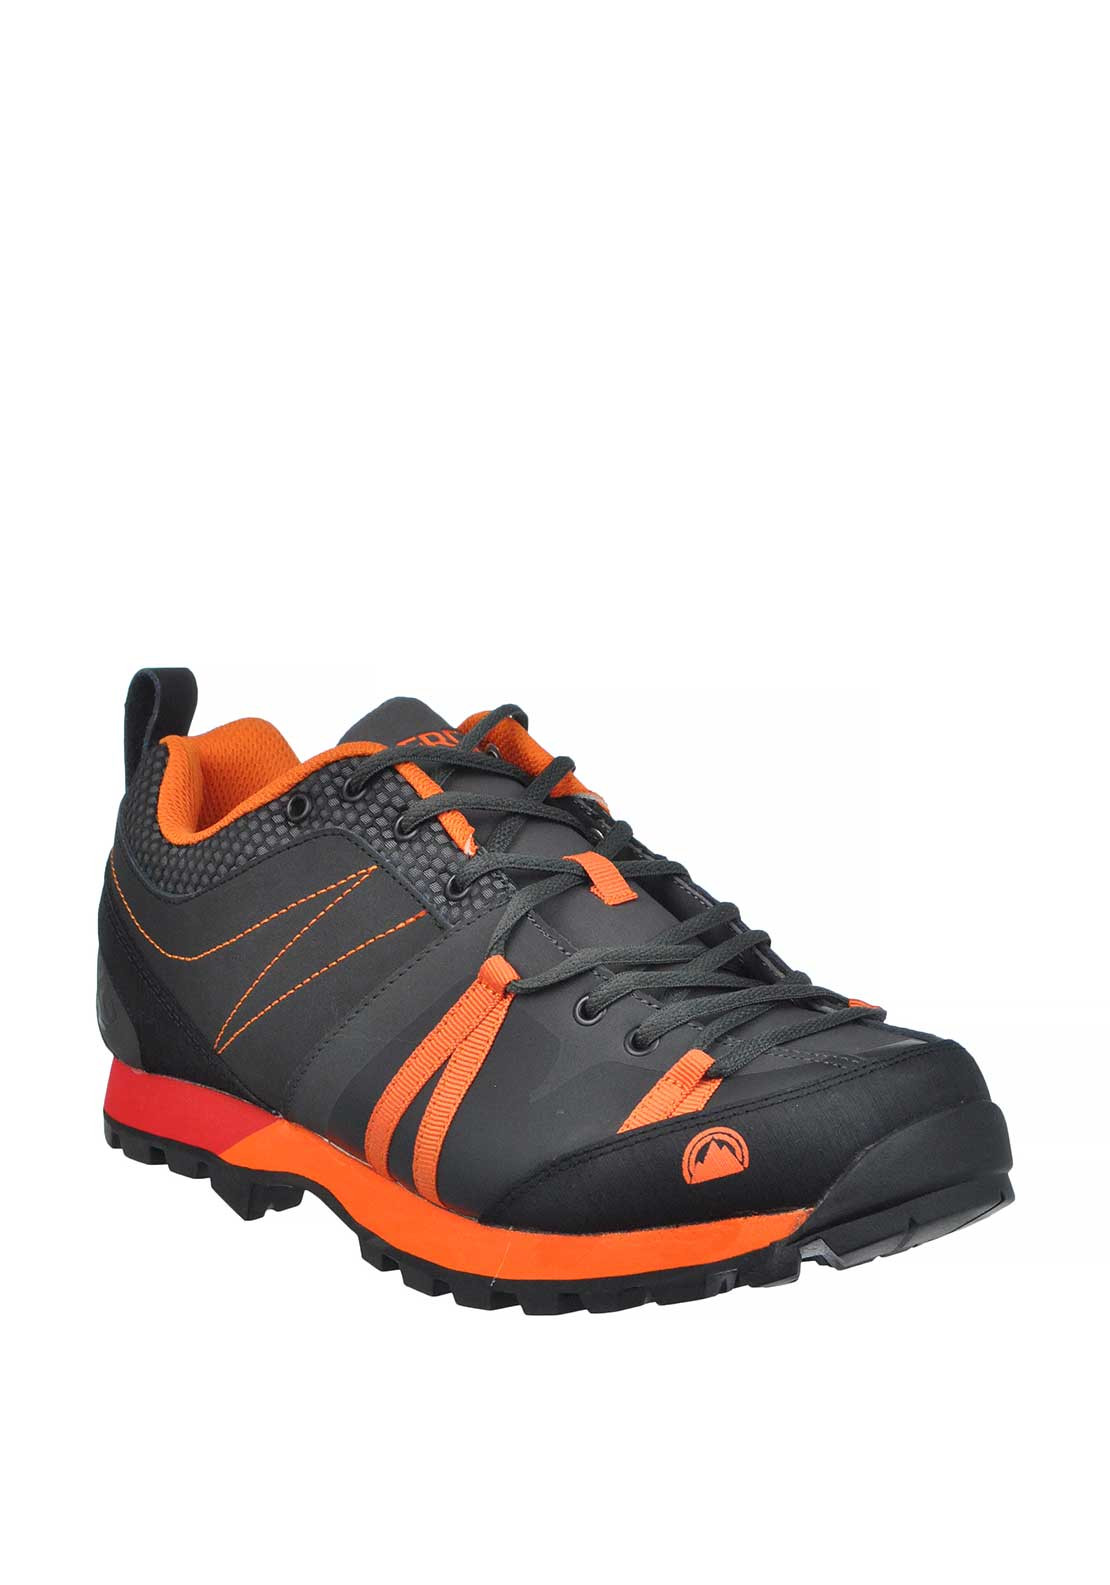 Berg Outdoor Mens Babirusa Lace Up Trainer, Grey and Orange